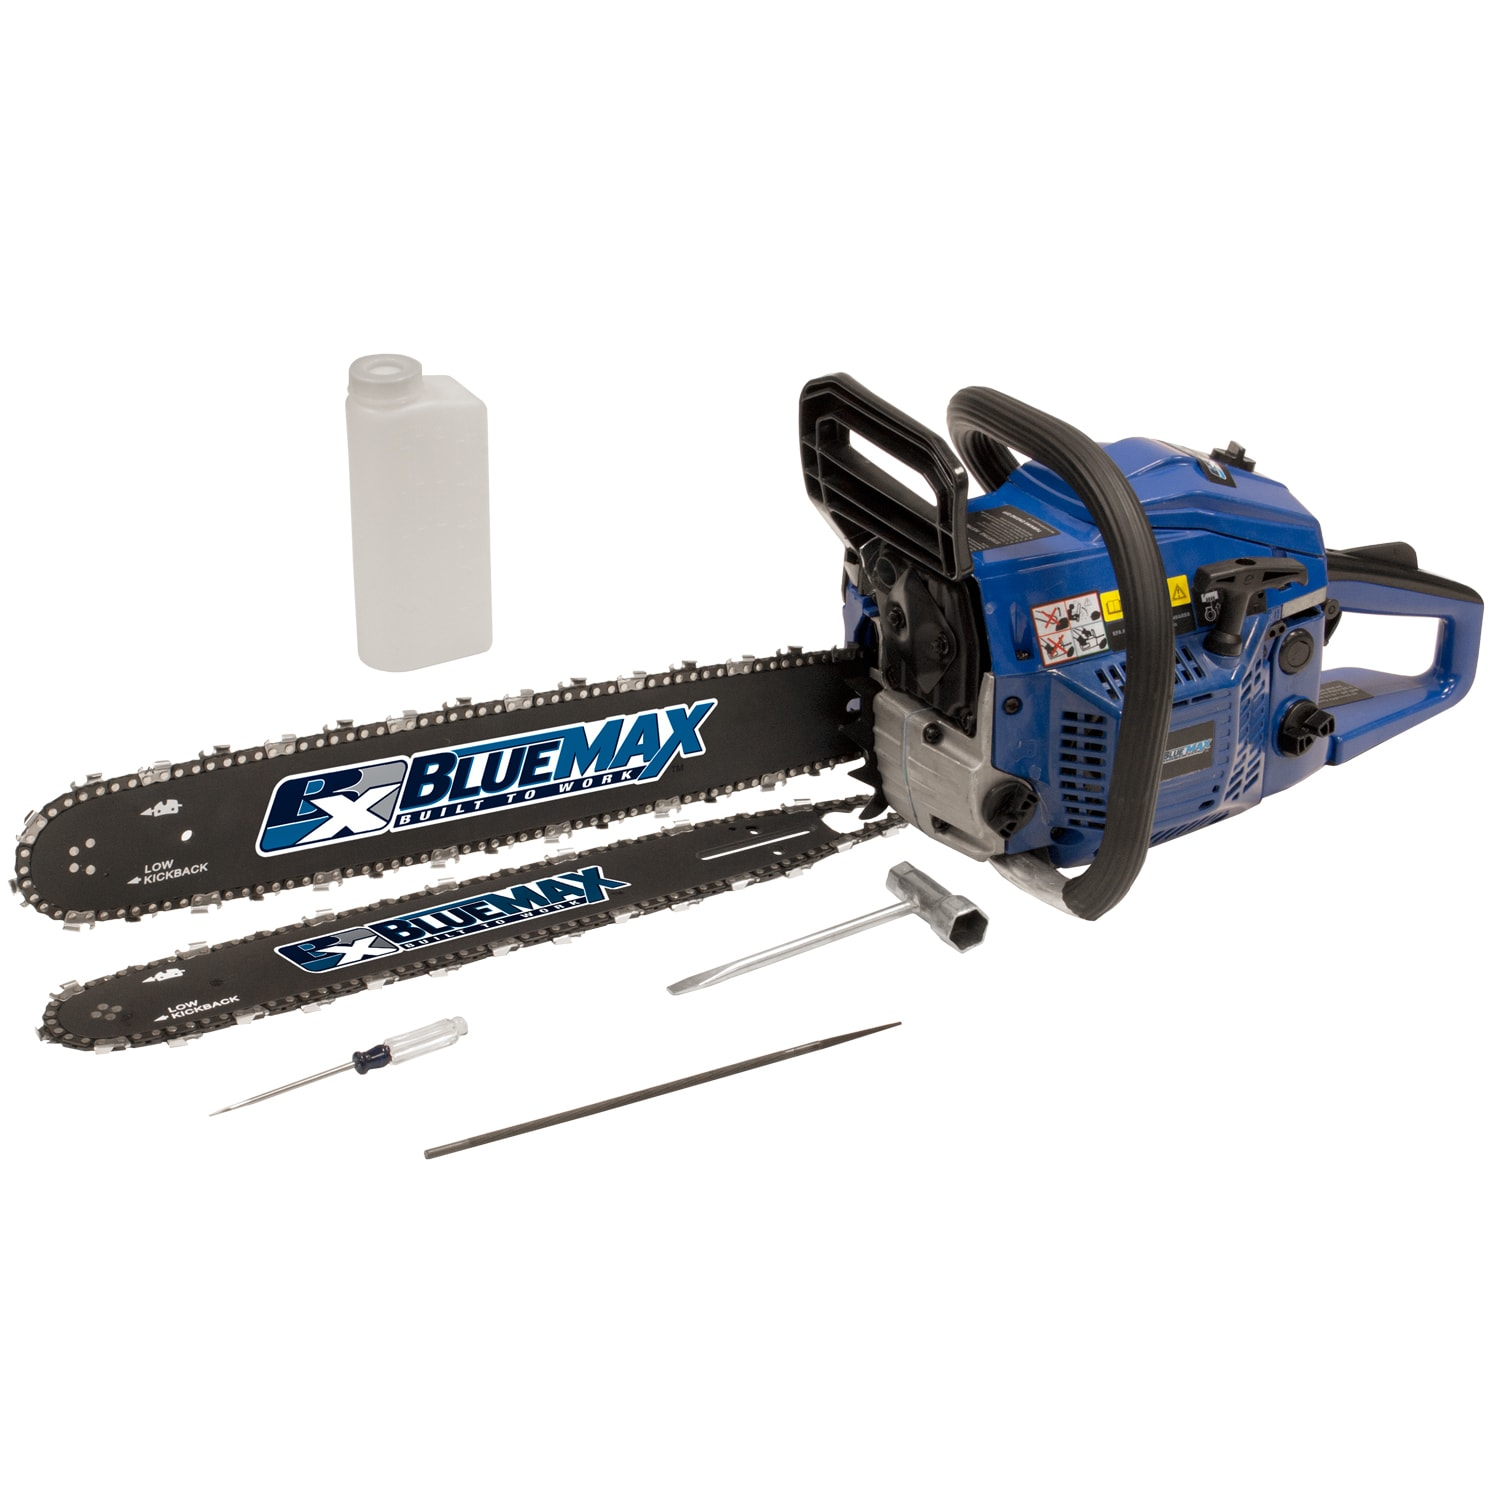 North American Tool Industries Blue Max 2-in-1 14 20-inch Combination Chainsaw by Overstock